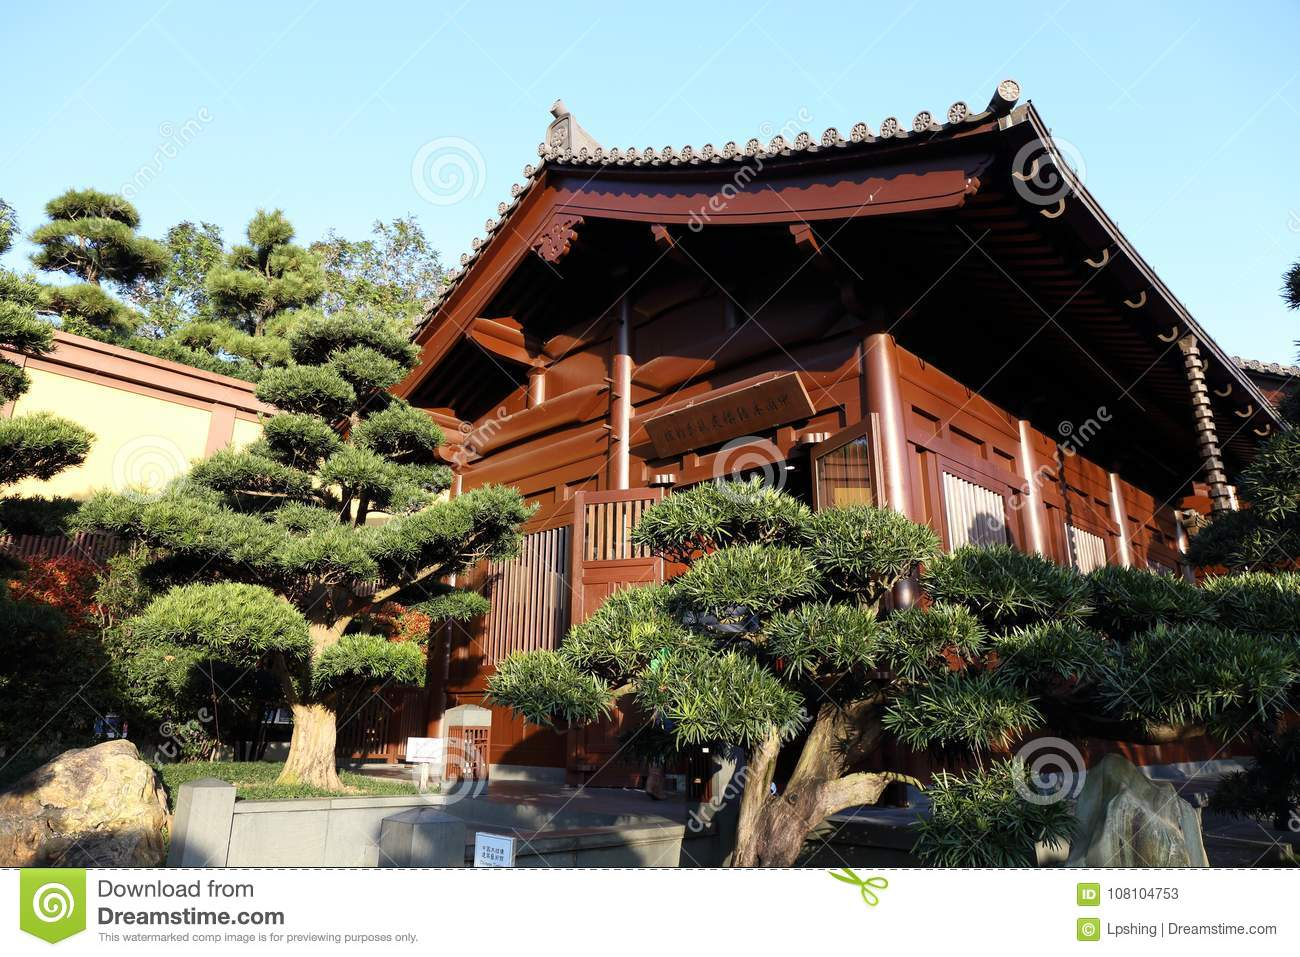 Uberlegen Download Chinese Style Garden Stock Image. Image Of Rock, Travel   108104753